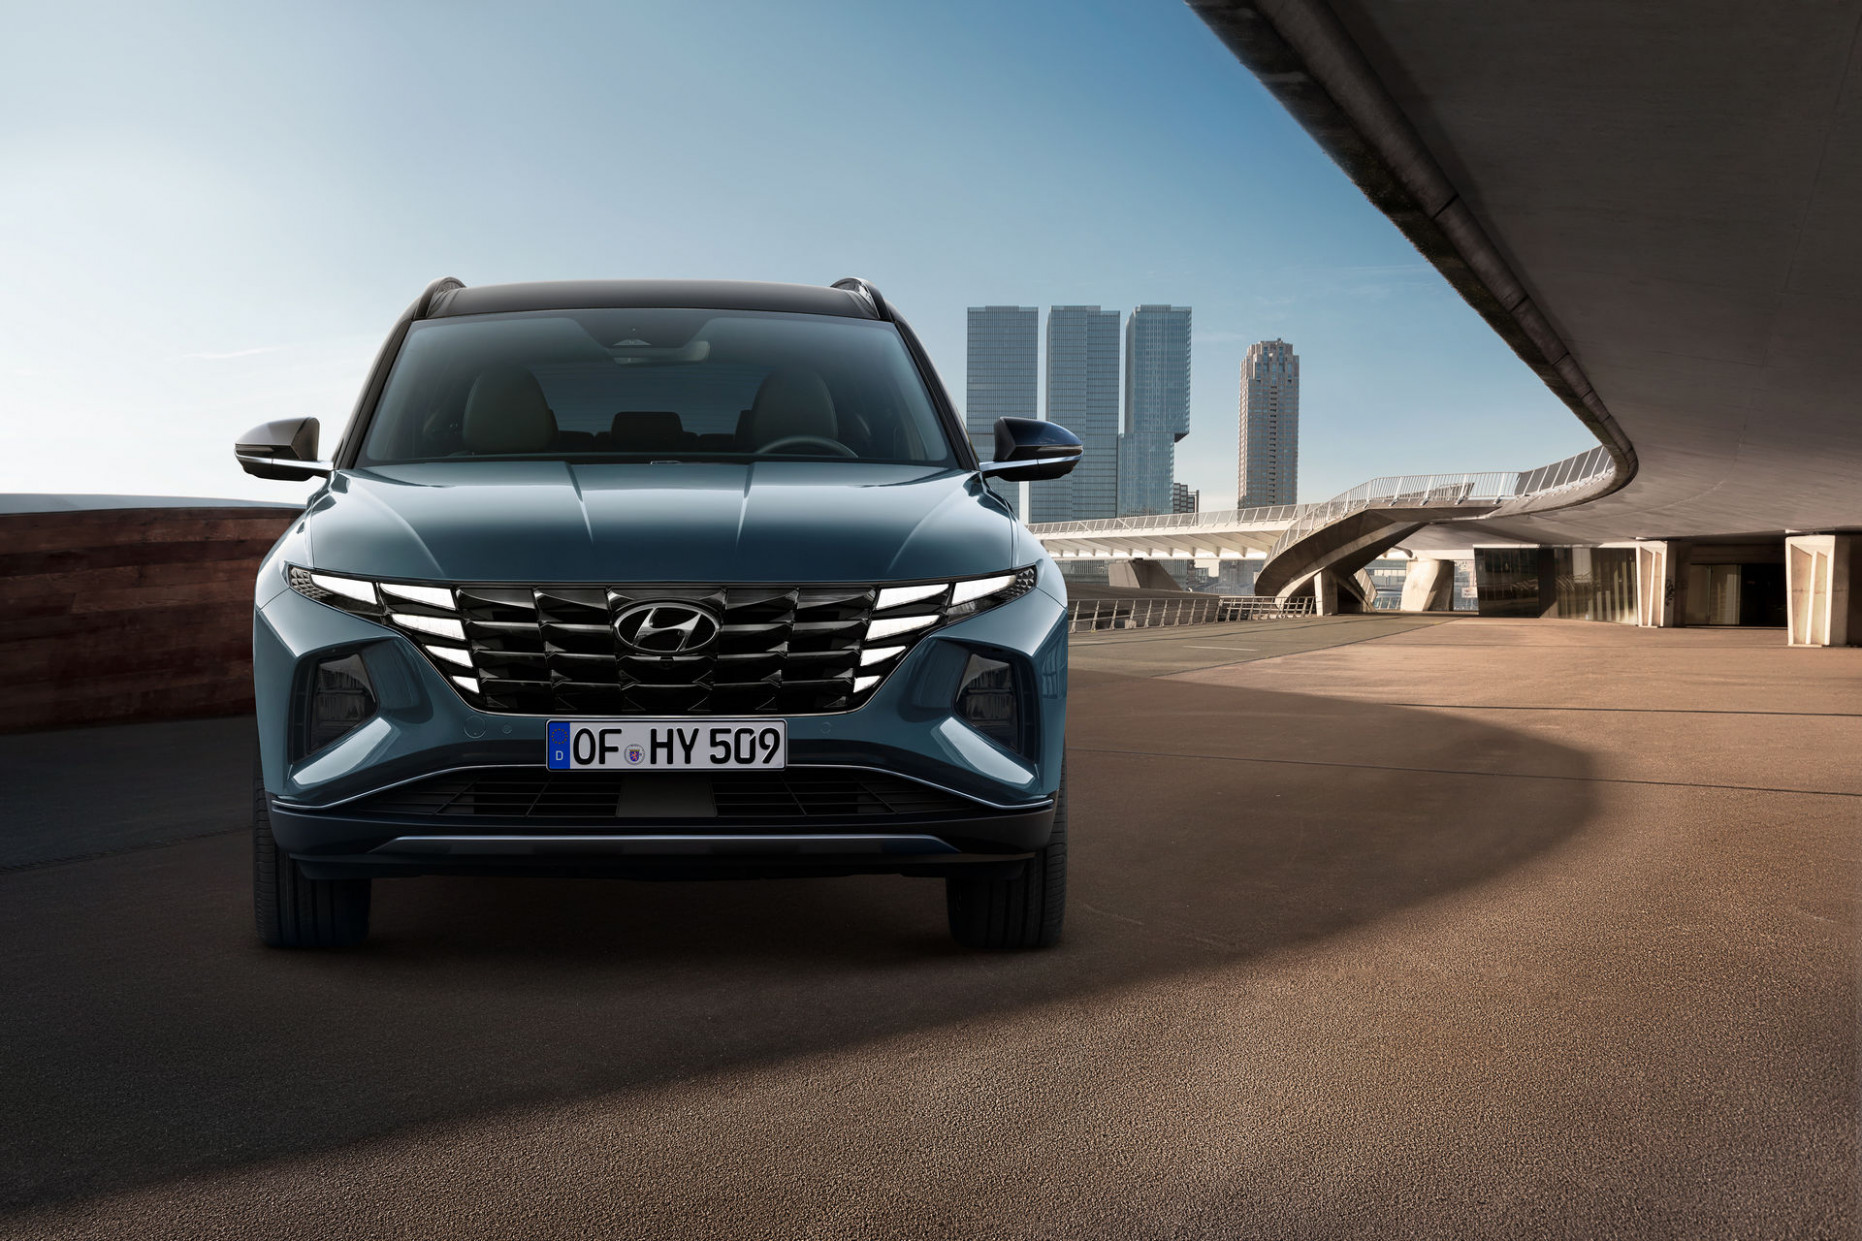 Redesign and Concept Hyundai New Suv 2022